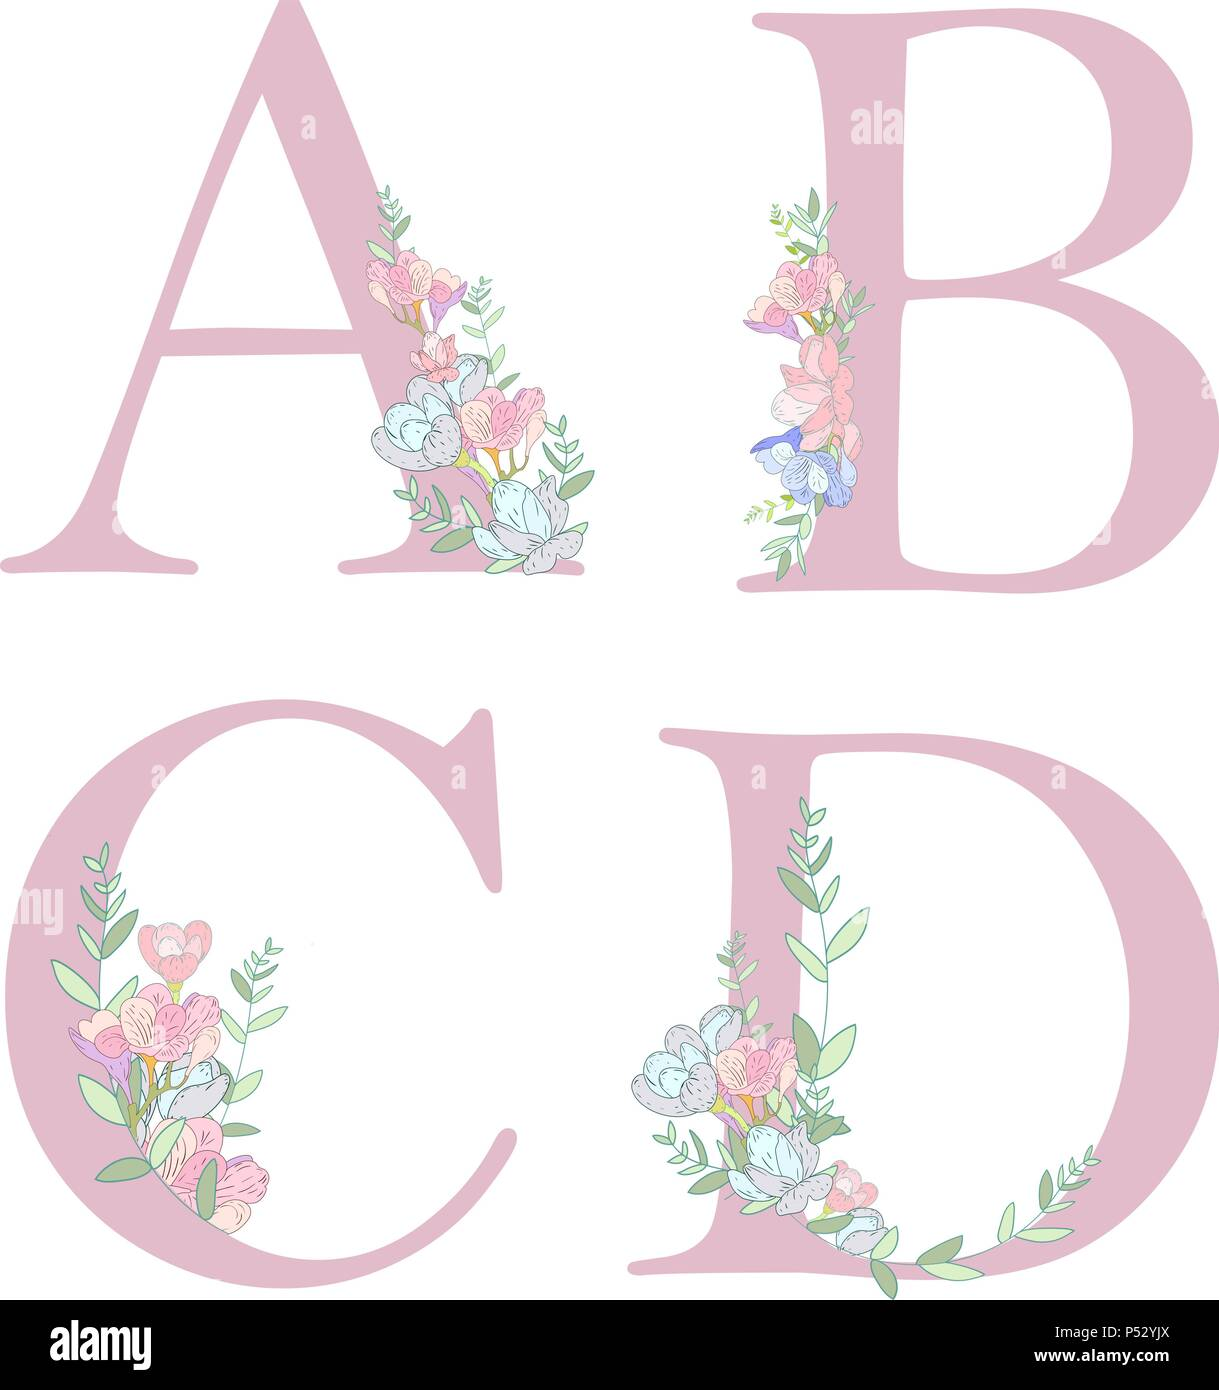 Diagram Flower Alphabet Letter C Stock Illustration